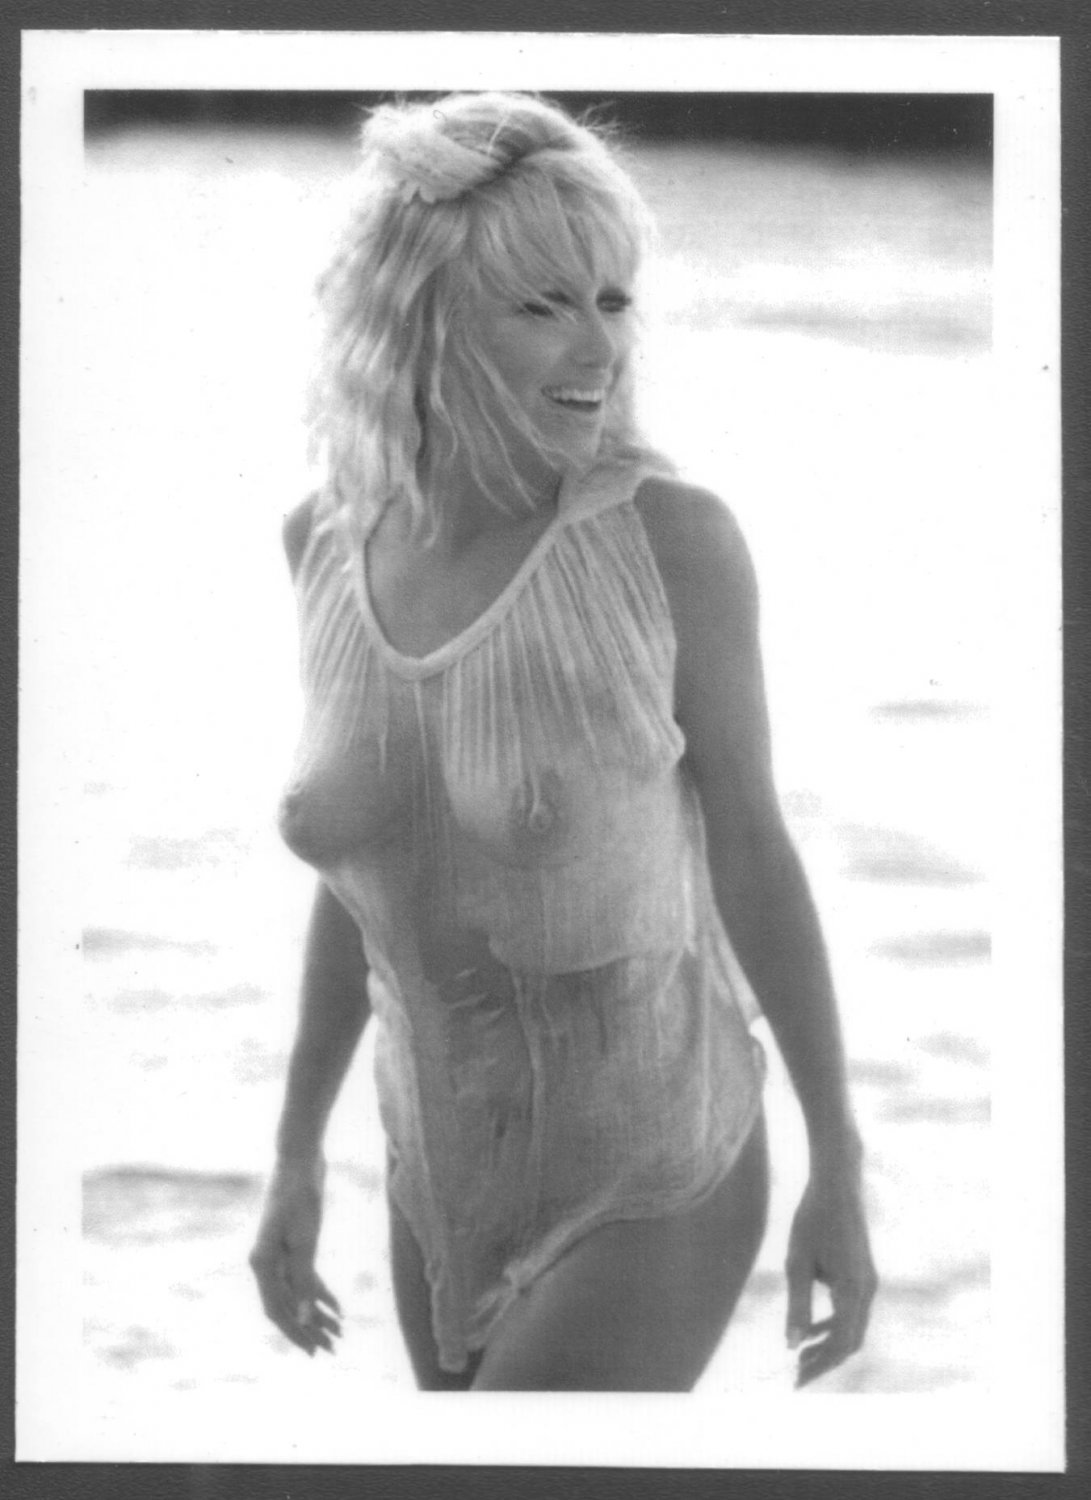 ACTRESS SUZANNE SOMMERS TOPLESS NUDE HUGE BREASTS NEW REPRINT 5 X 7  #1